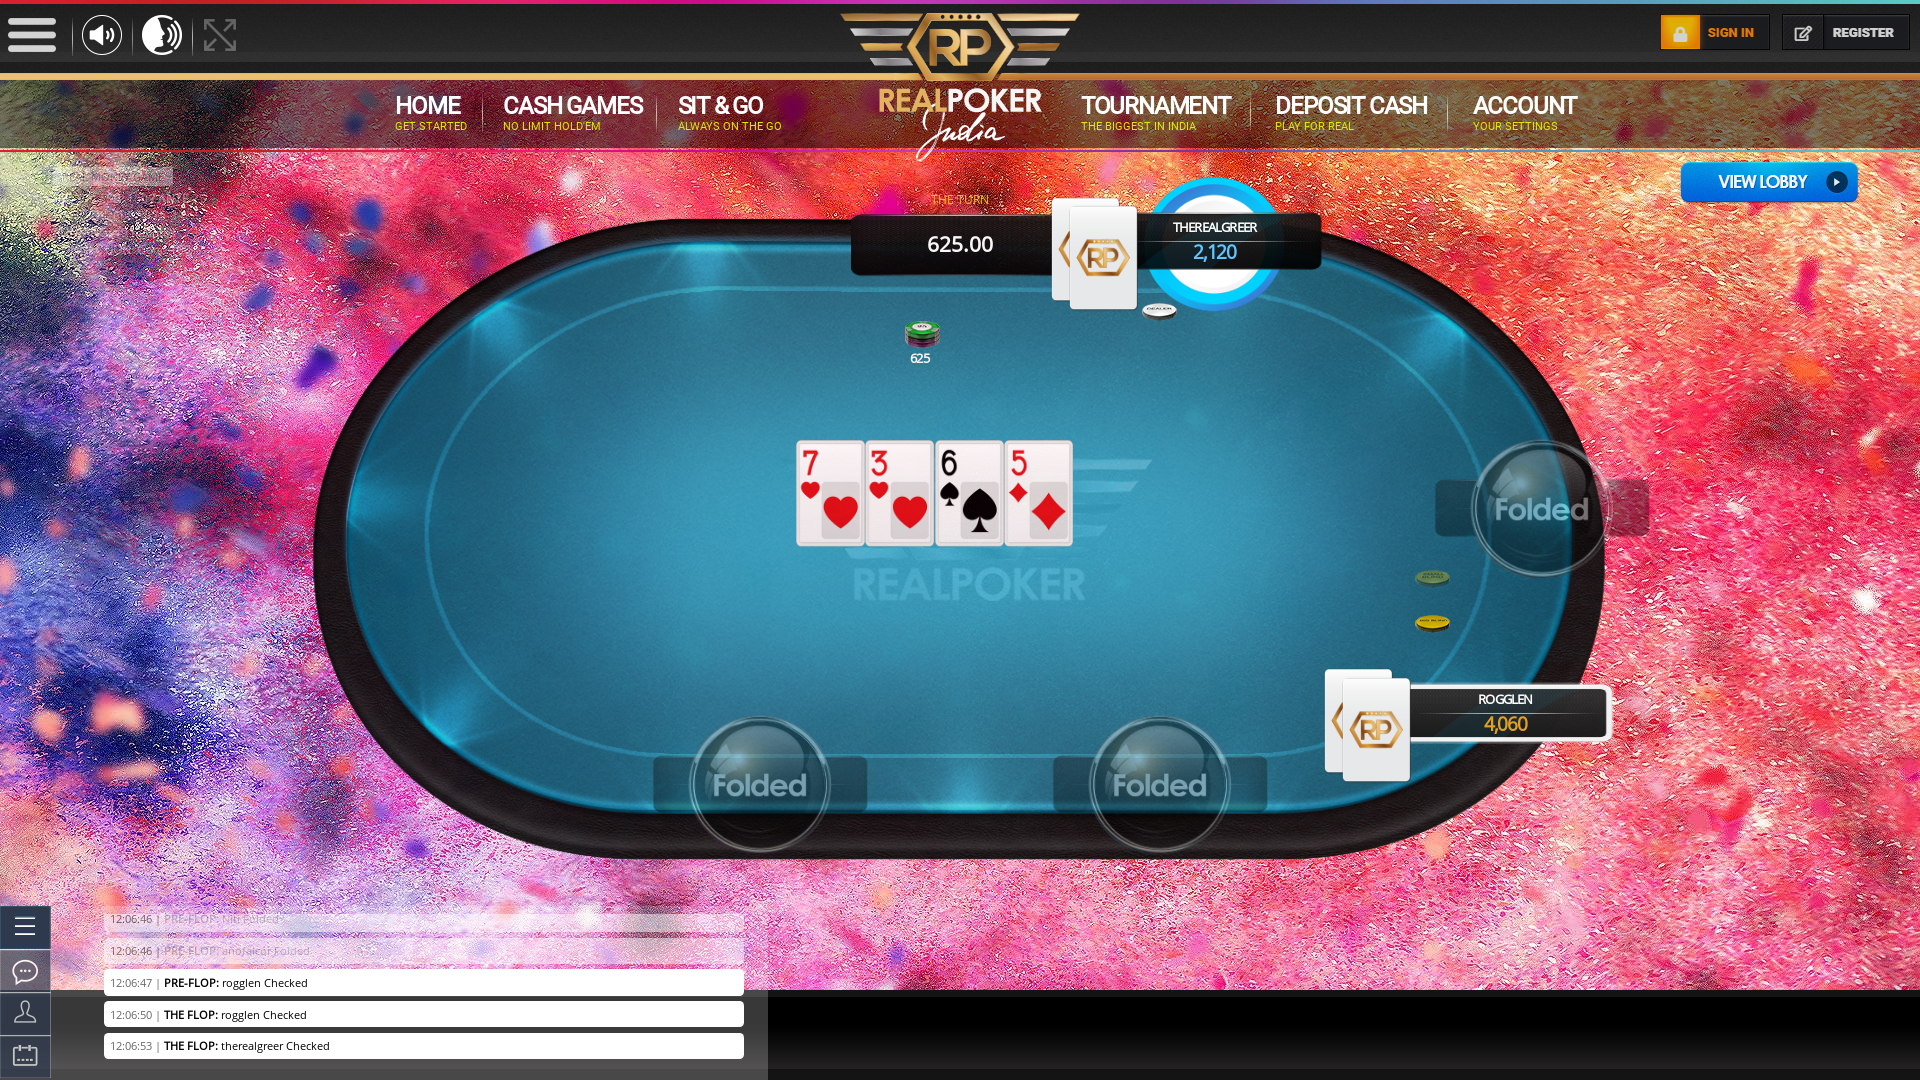 Real poker 10 player table in the 49th minute of the match